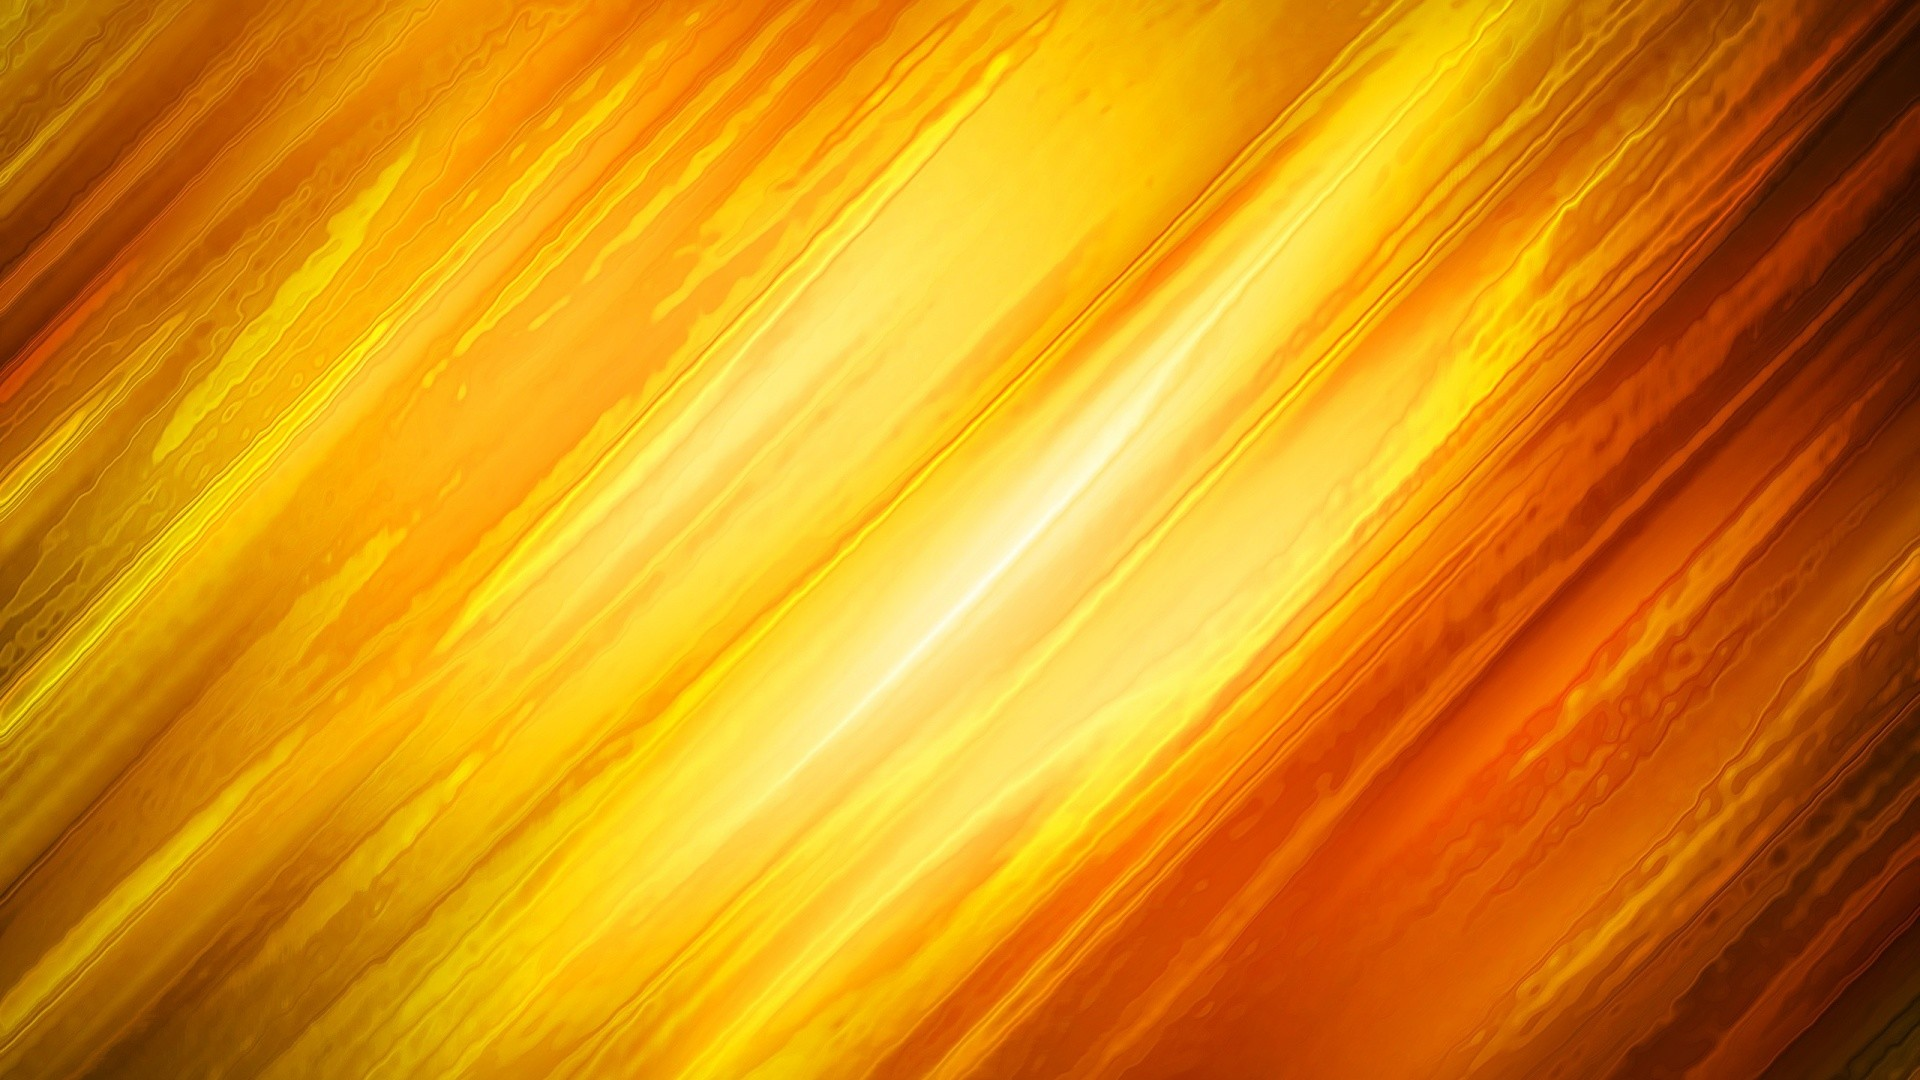 wallpapers background orange yellow abstract 1920×1080